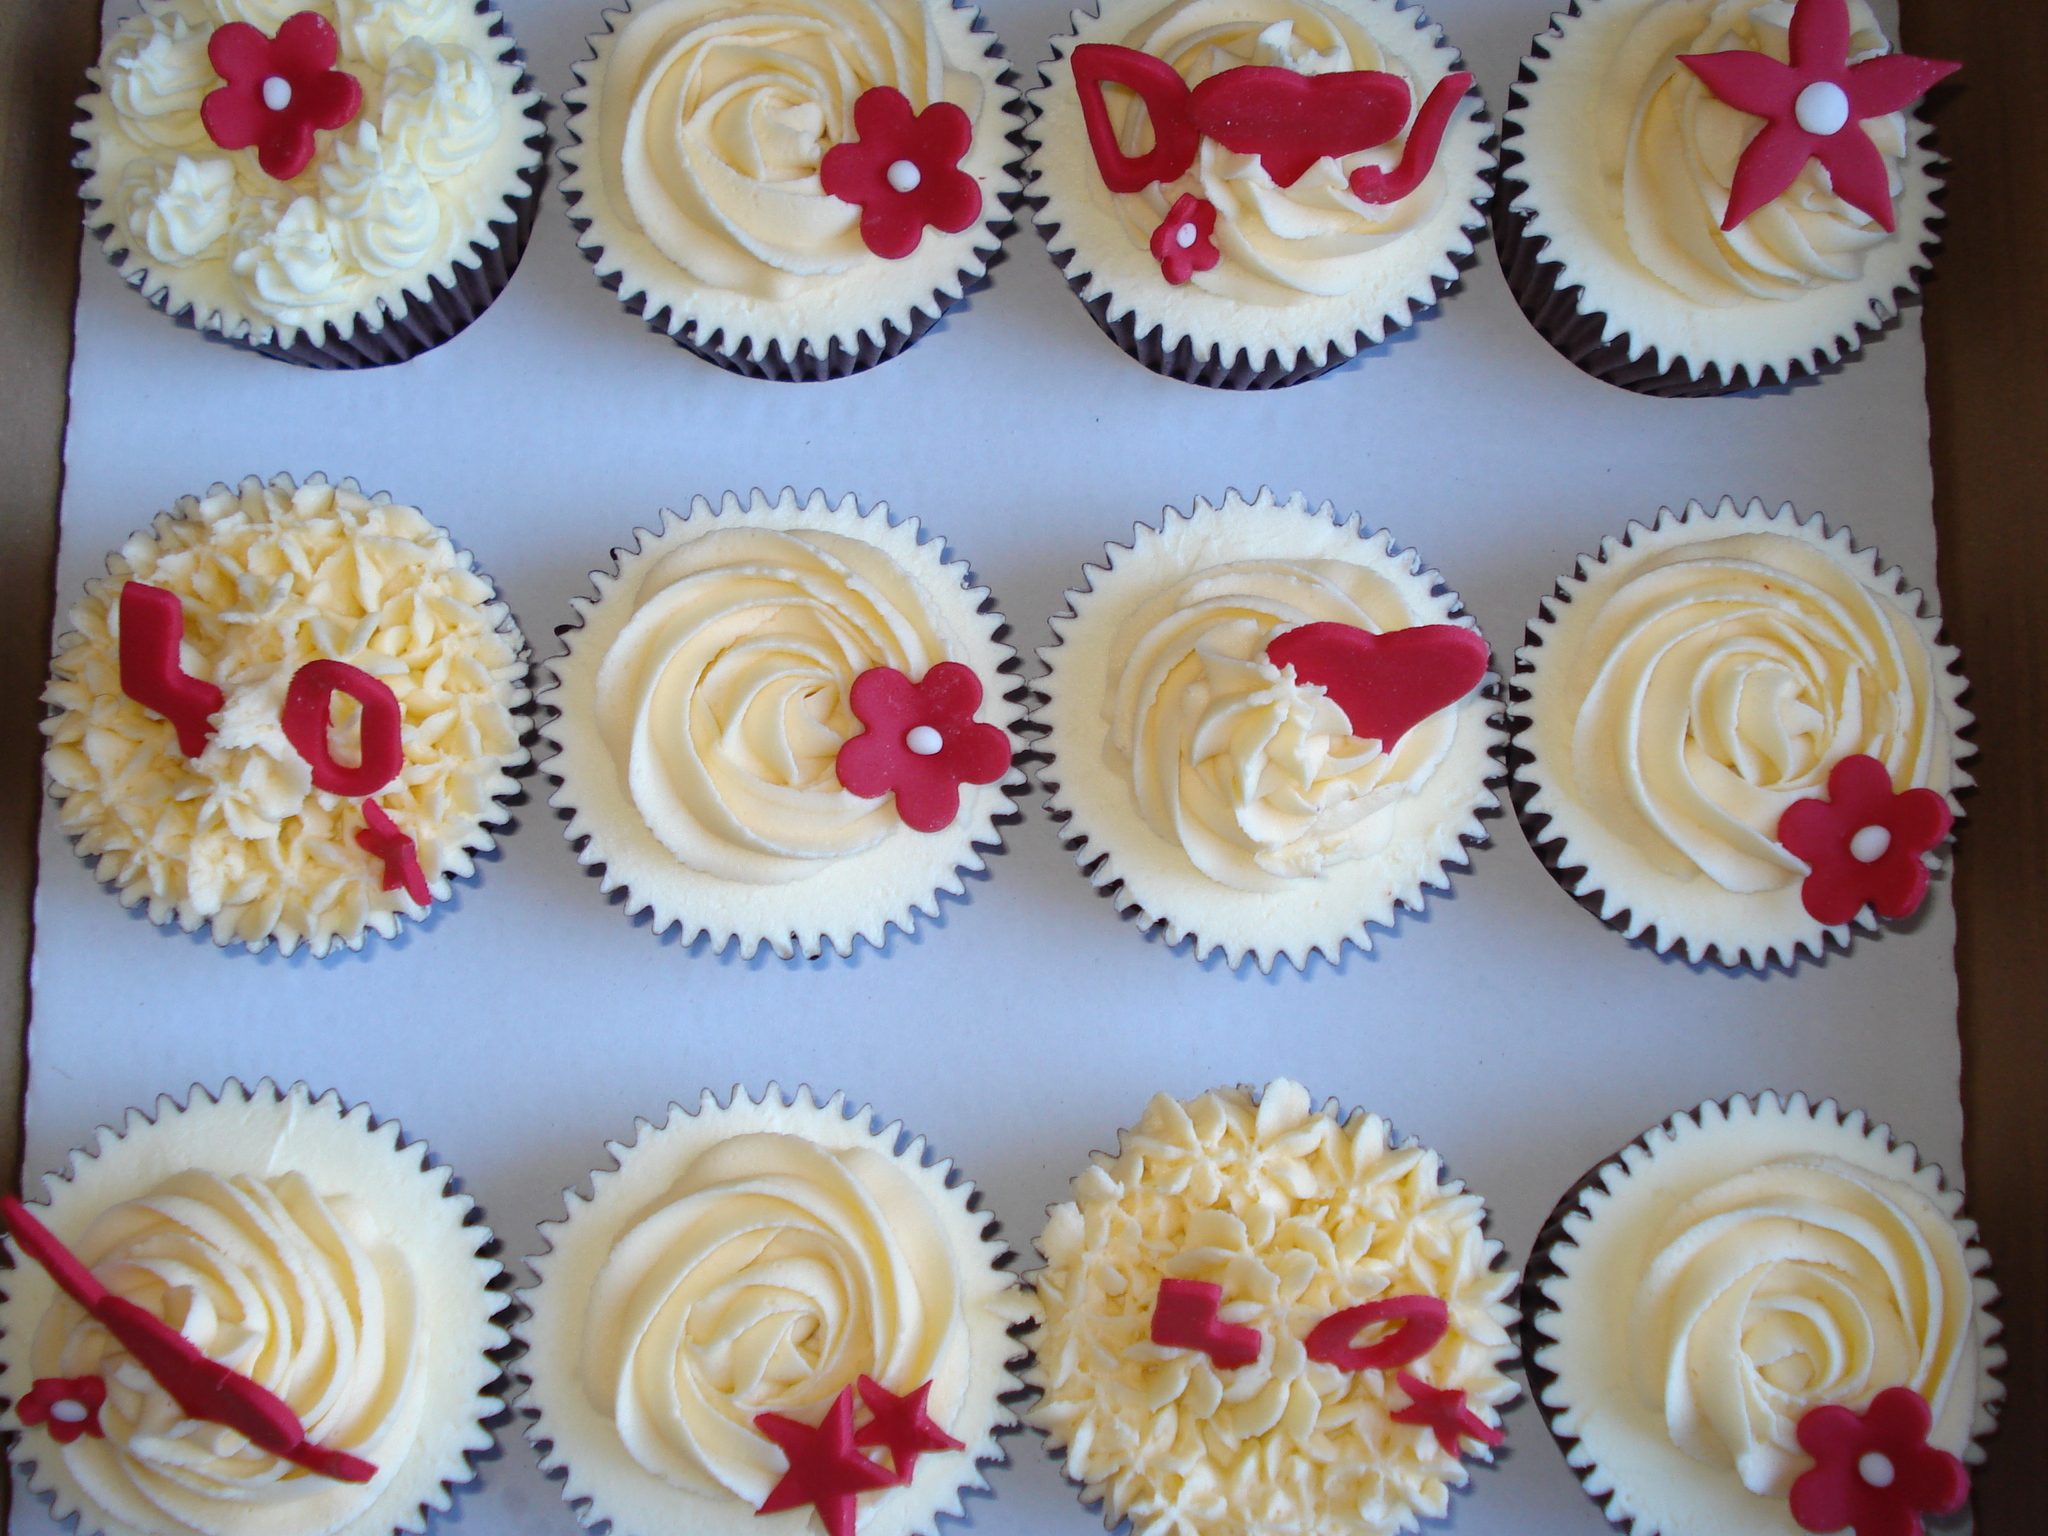 A dozen ivory and ruby cupcakes